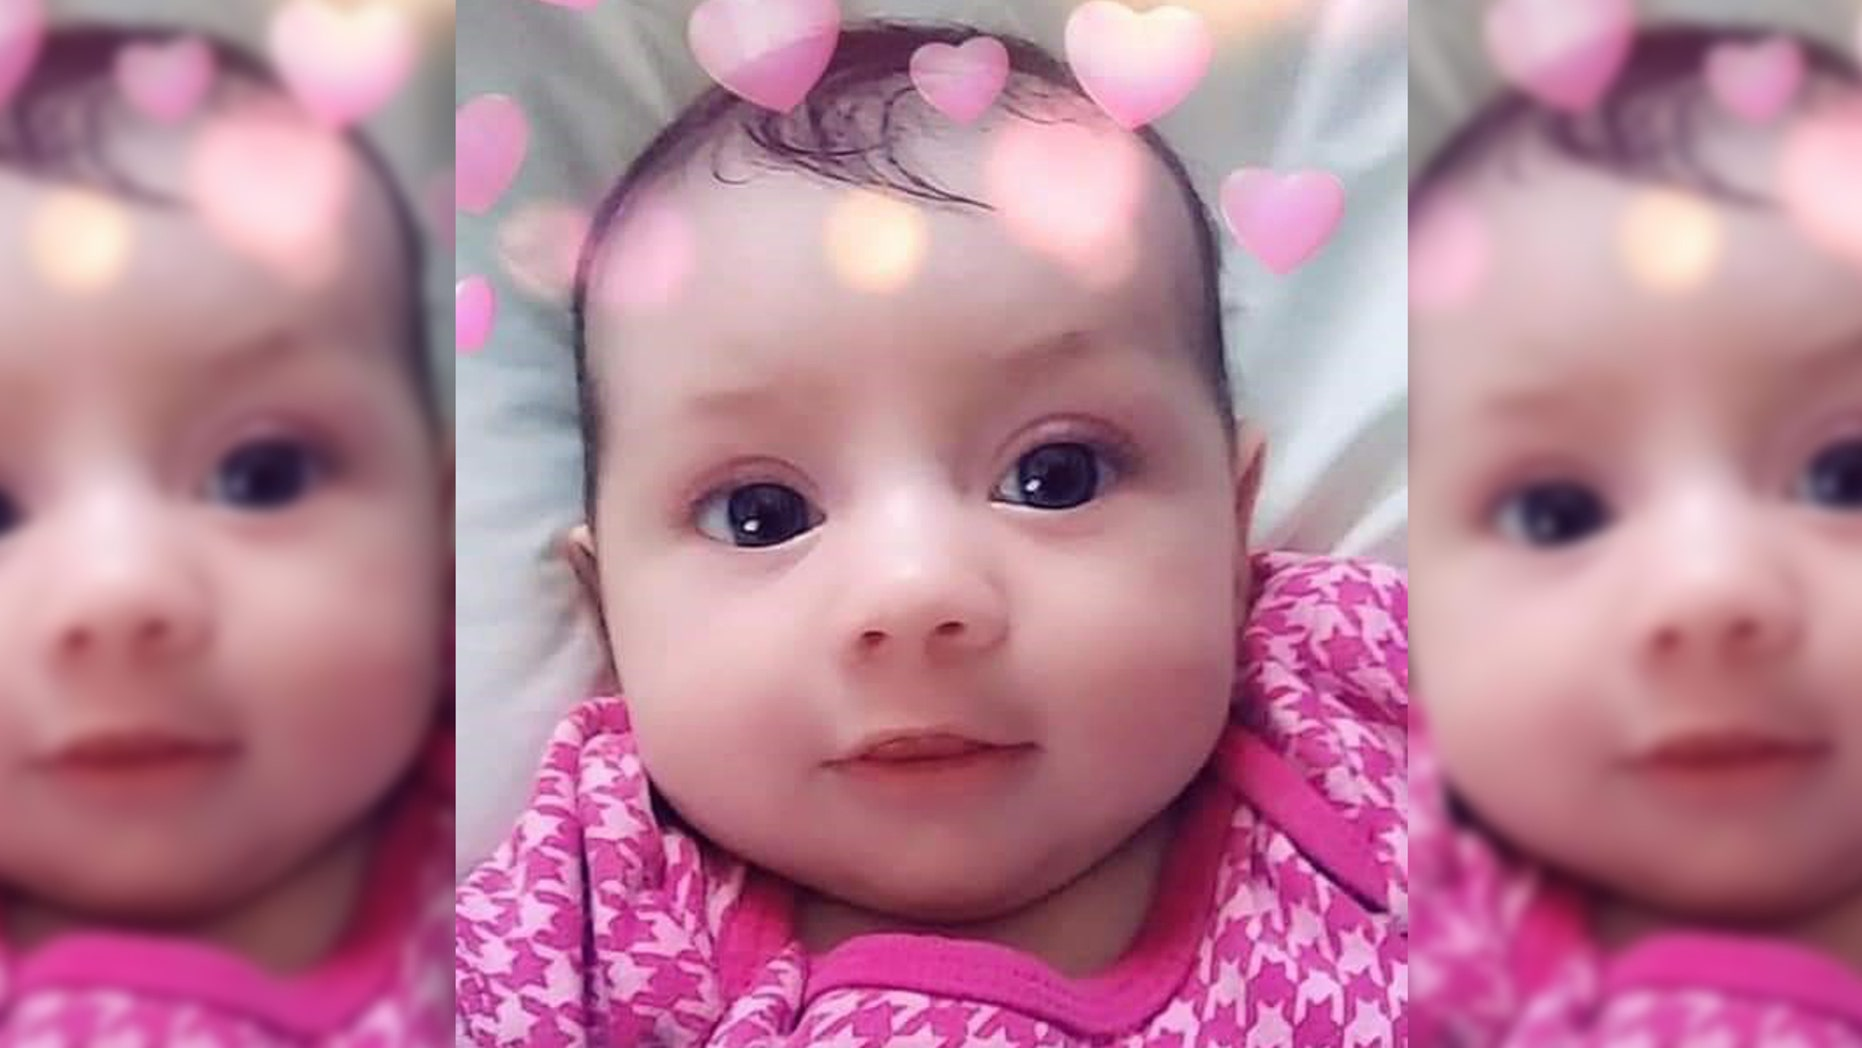 Indianapolis police are searching for 8-month-old Amiah Robertson, last seen alive March 9 with her mother's boyfriend.